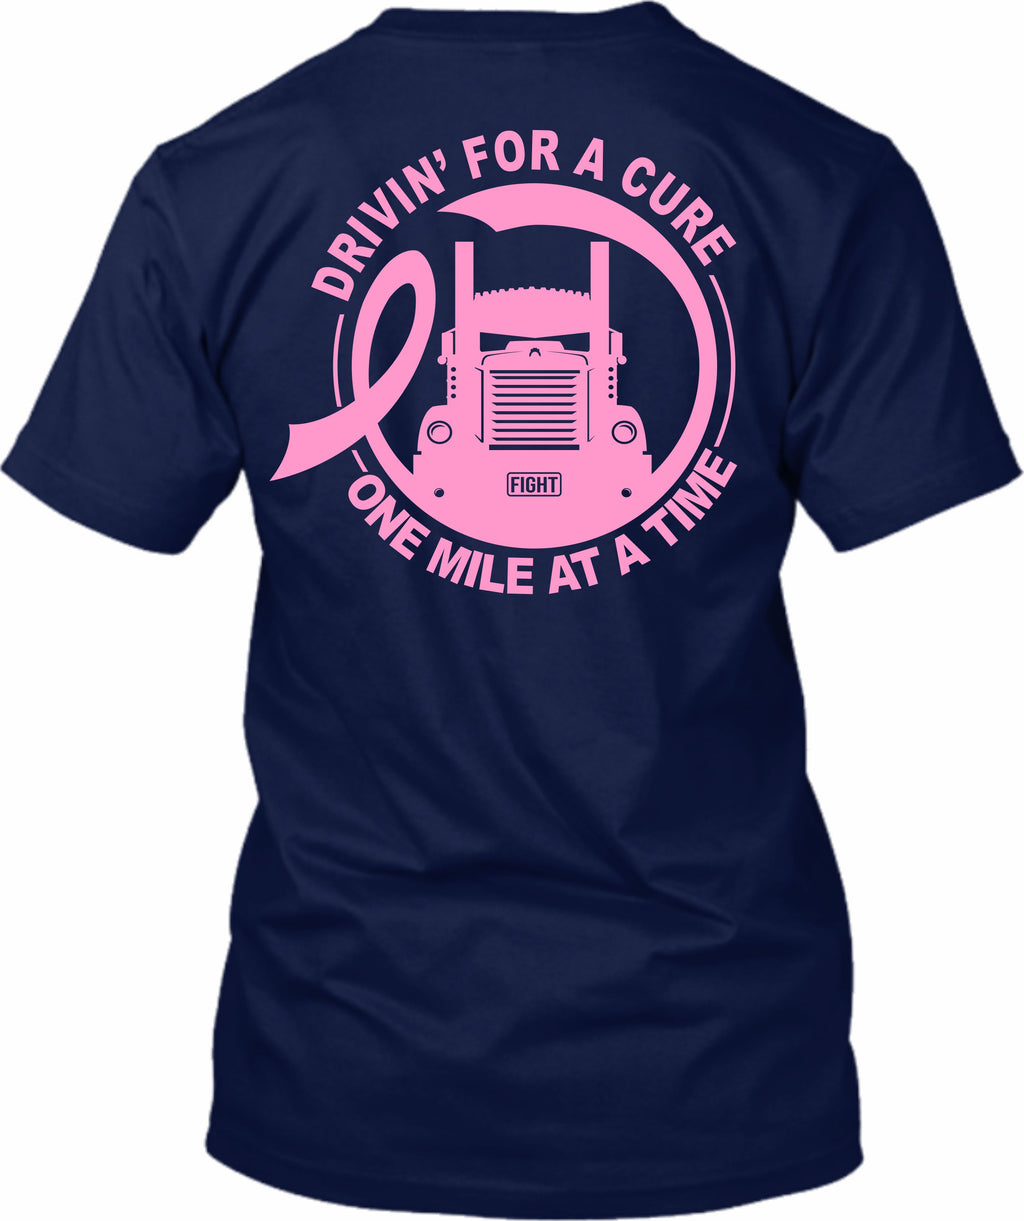 Drivin' for a Cure One Mile At A Time Breast Cancer KW